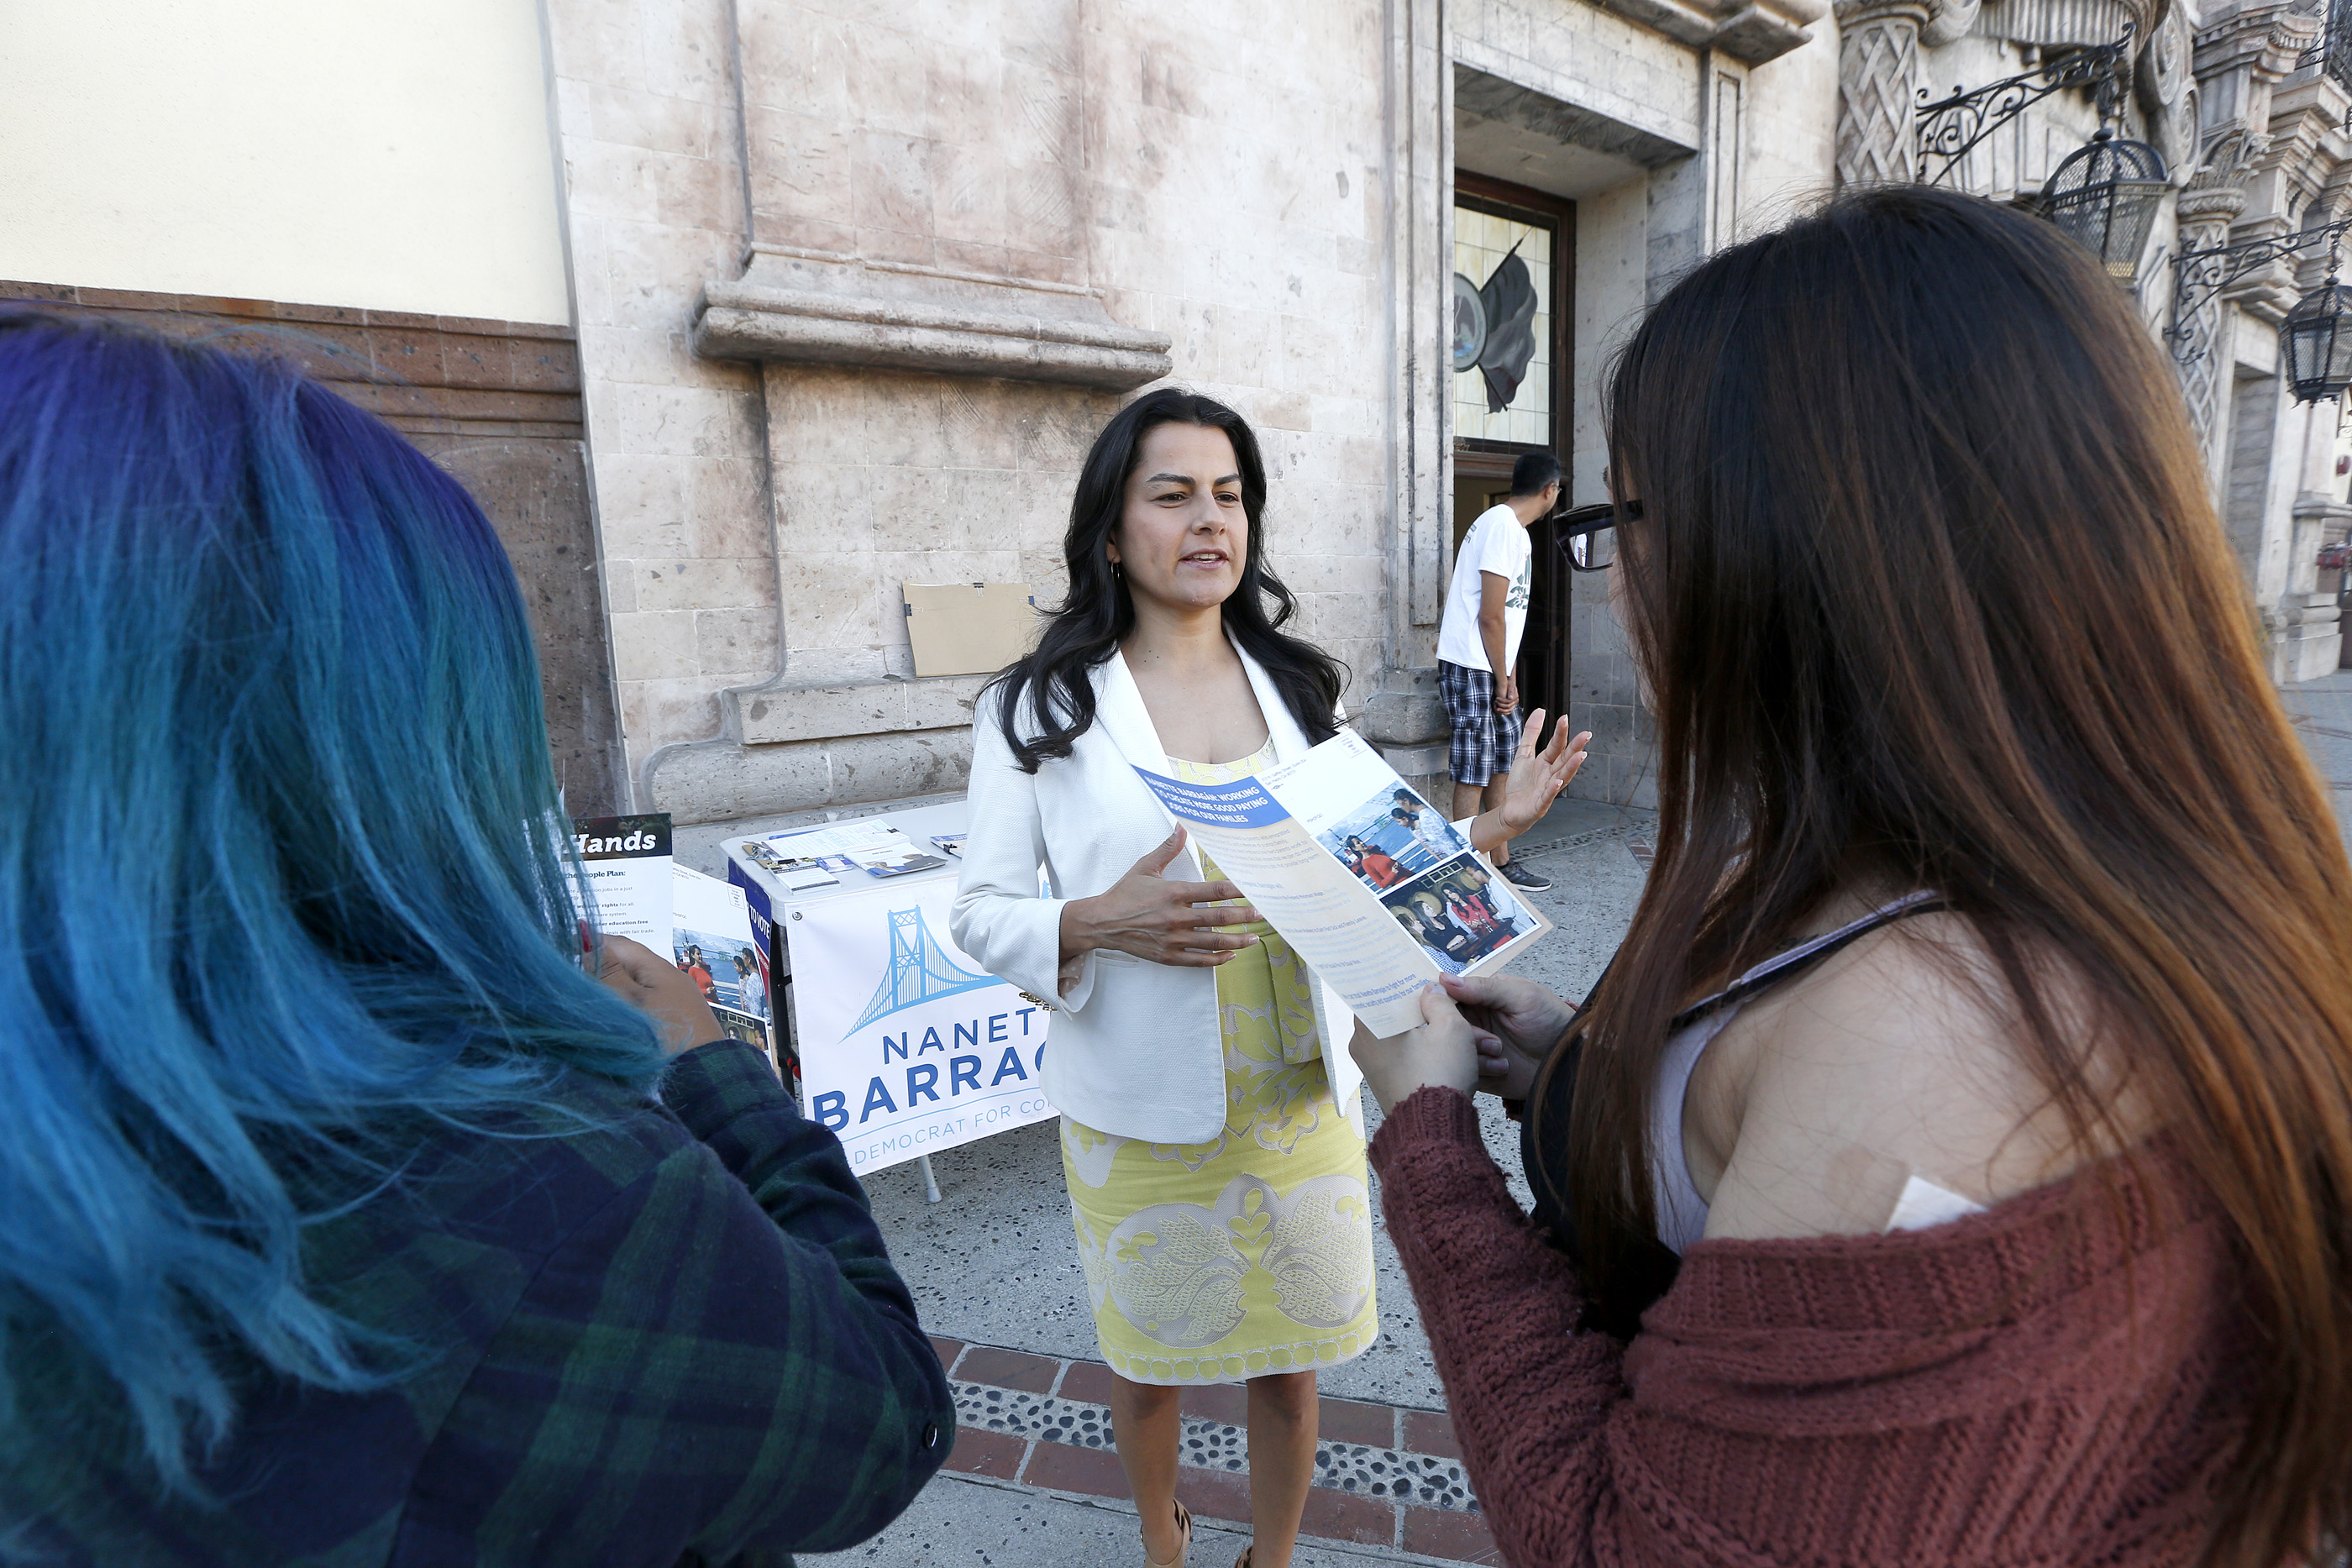 10/21/16/ LOS ANGELES/Nanette Barragan, attorney and candidate for the United States House of Representatives in California's 44th district, speaks with residents of Lynwood while visiting Plaza Mexico. (Photo Aurelia Ventura/ La Opinion)